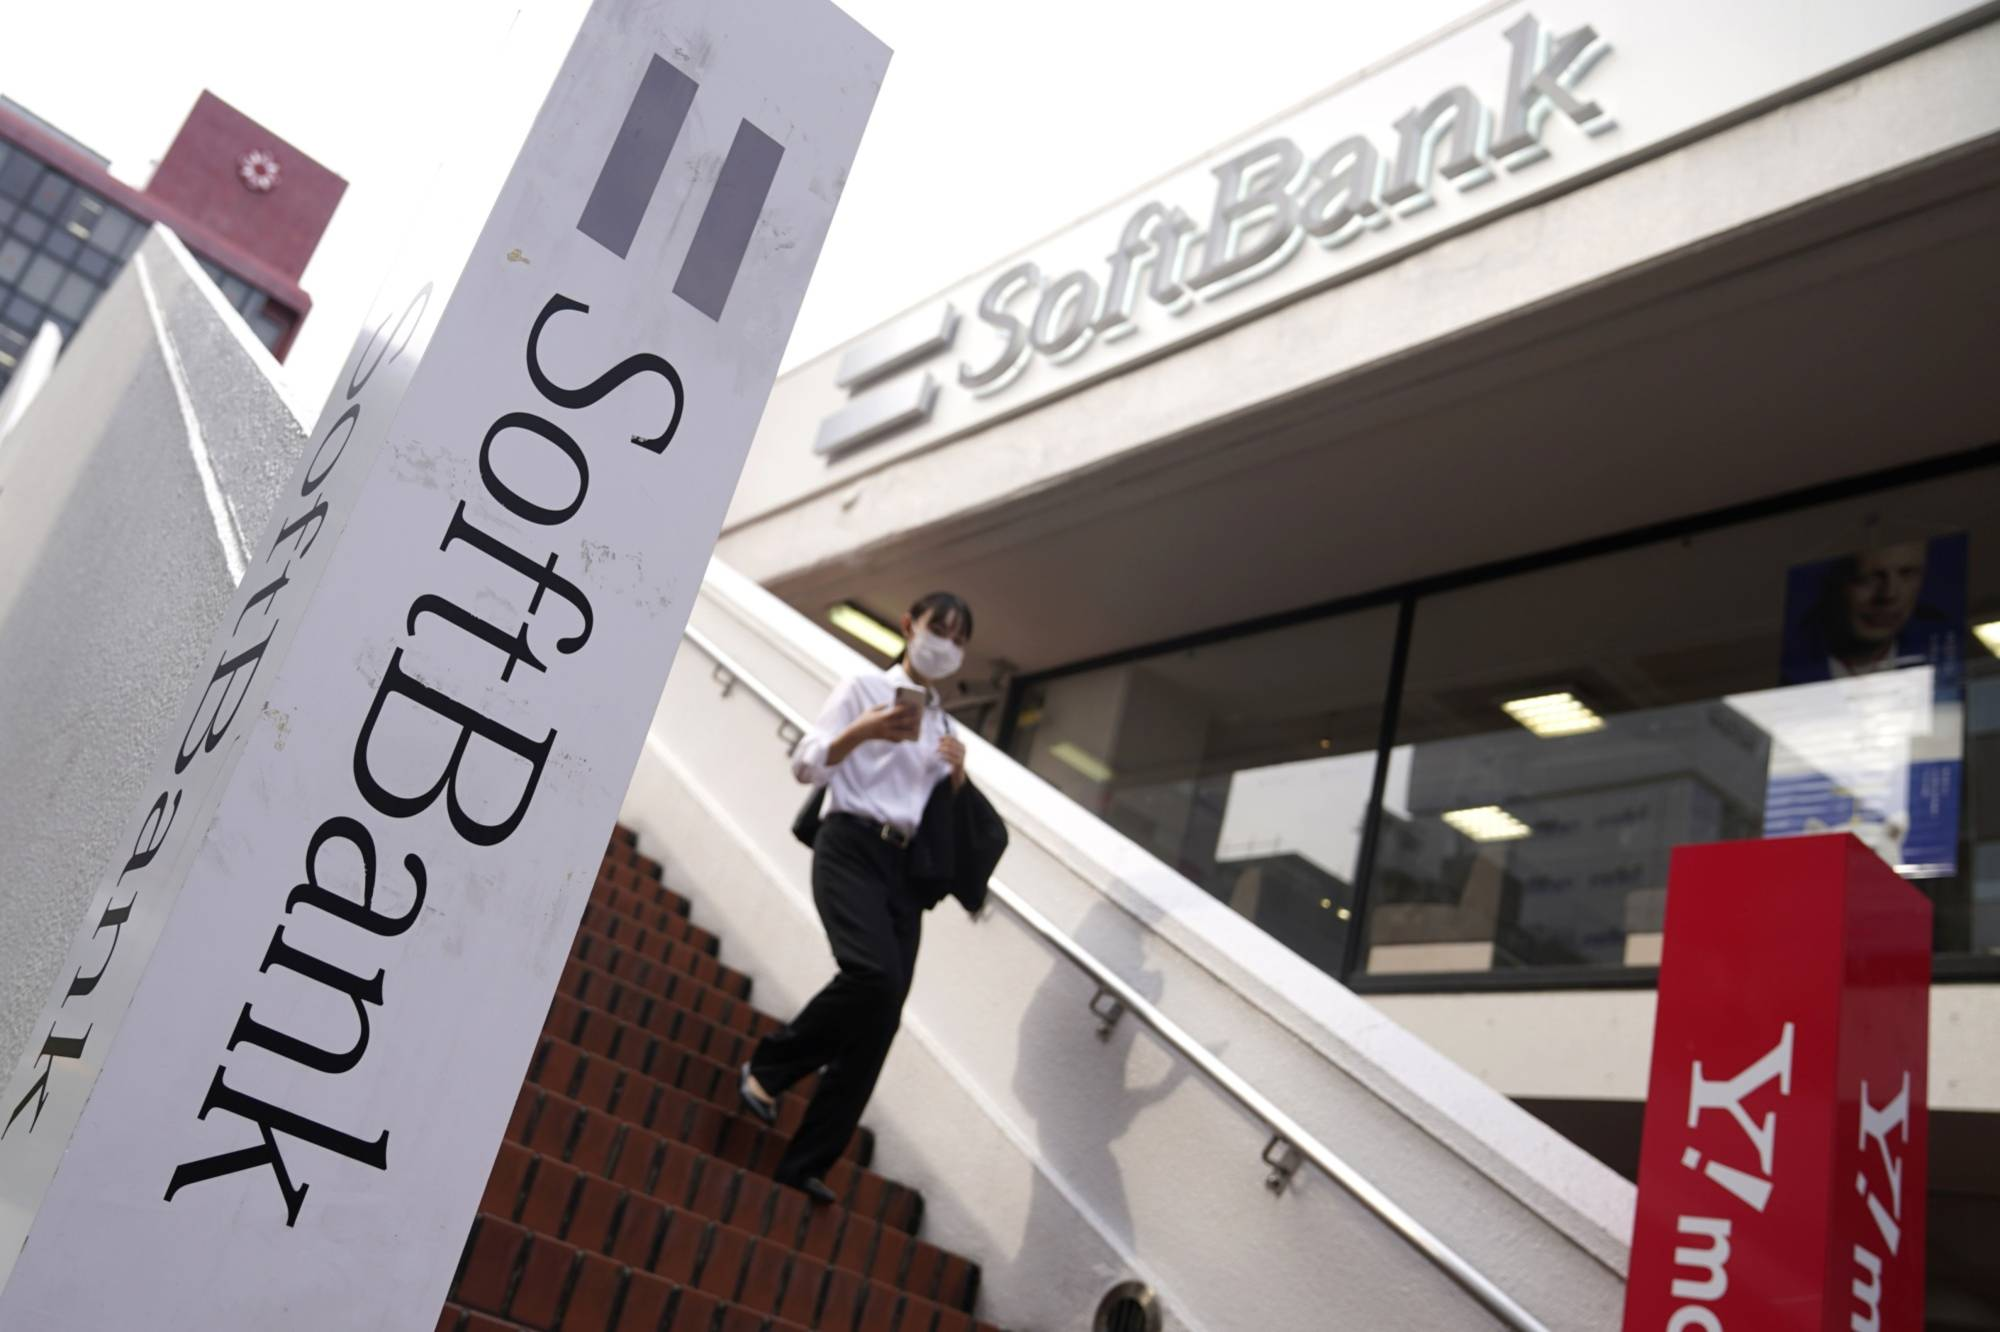 SoftBank Group Corp. said Friday it will sell about ¥1.33 trillion of the stock it holds in wireless unit SoftBank Corp. | BLOOMBERG